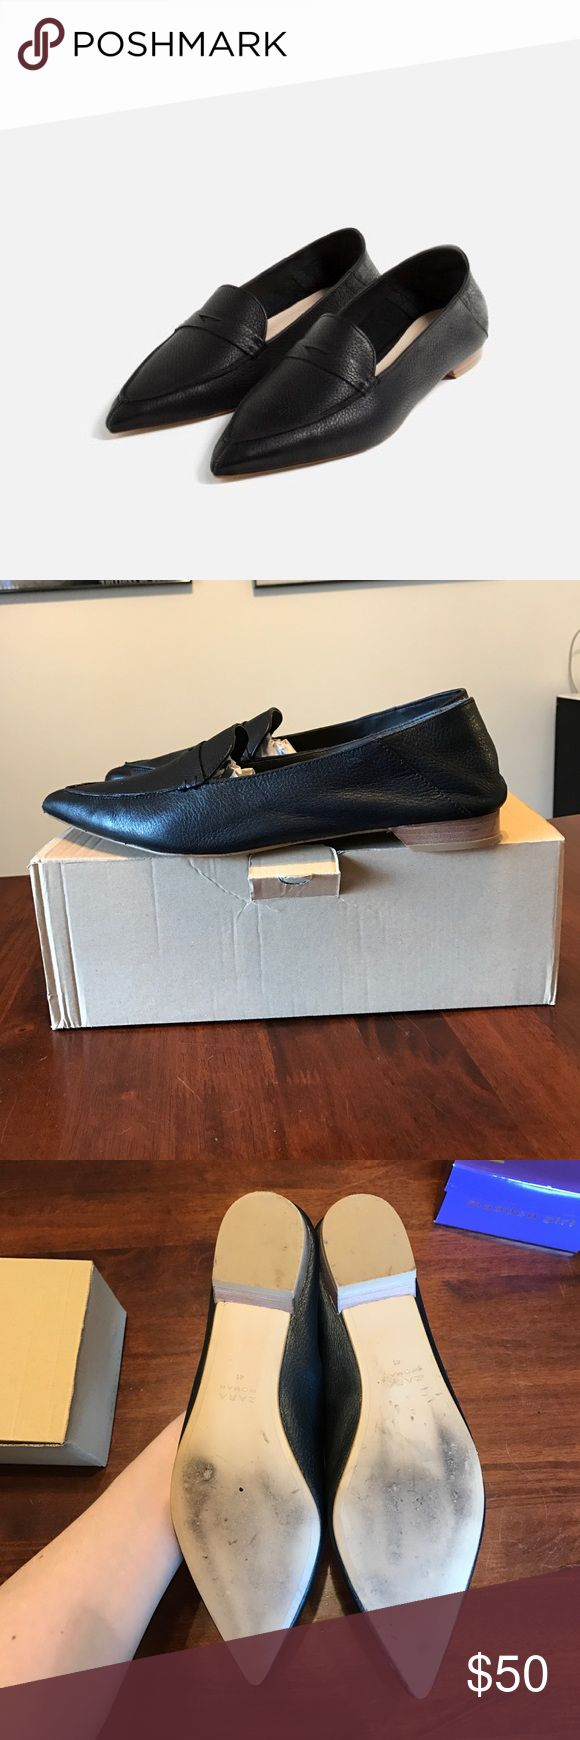 """Leather Loafers ZARA Pointed Leather Flats. Very comfortable. Excellent condition. Heel height: 0.75""""-in. In Box. Zara Shoes Flats & Loafers"""